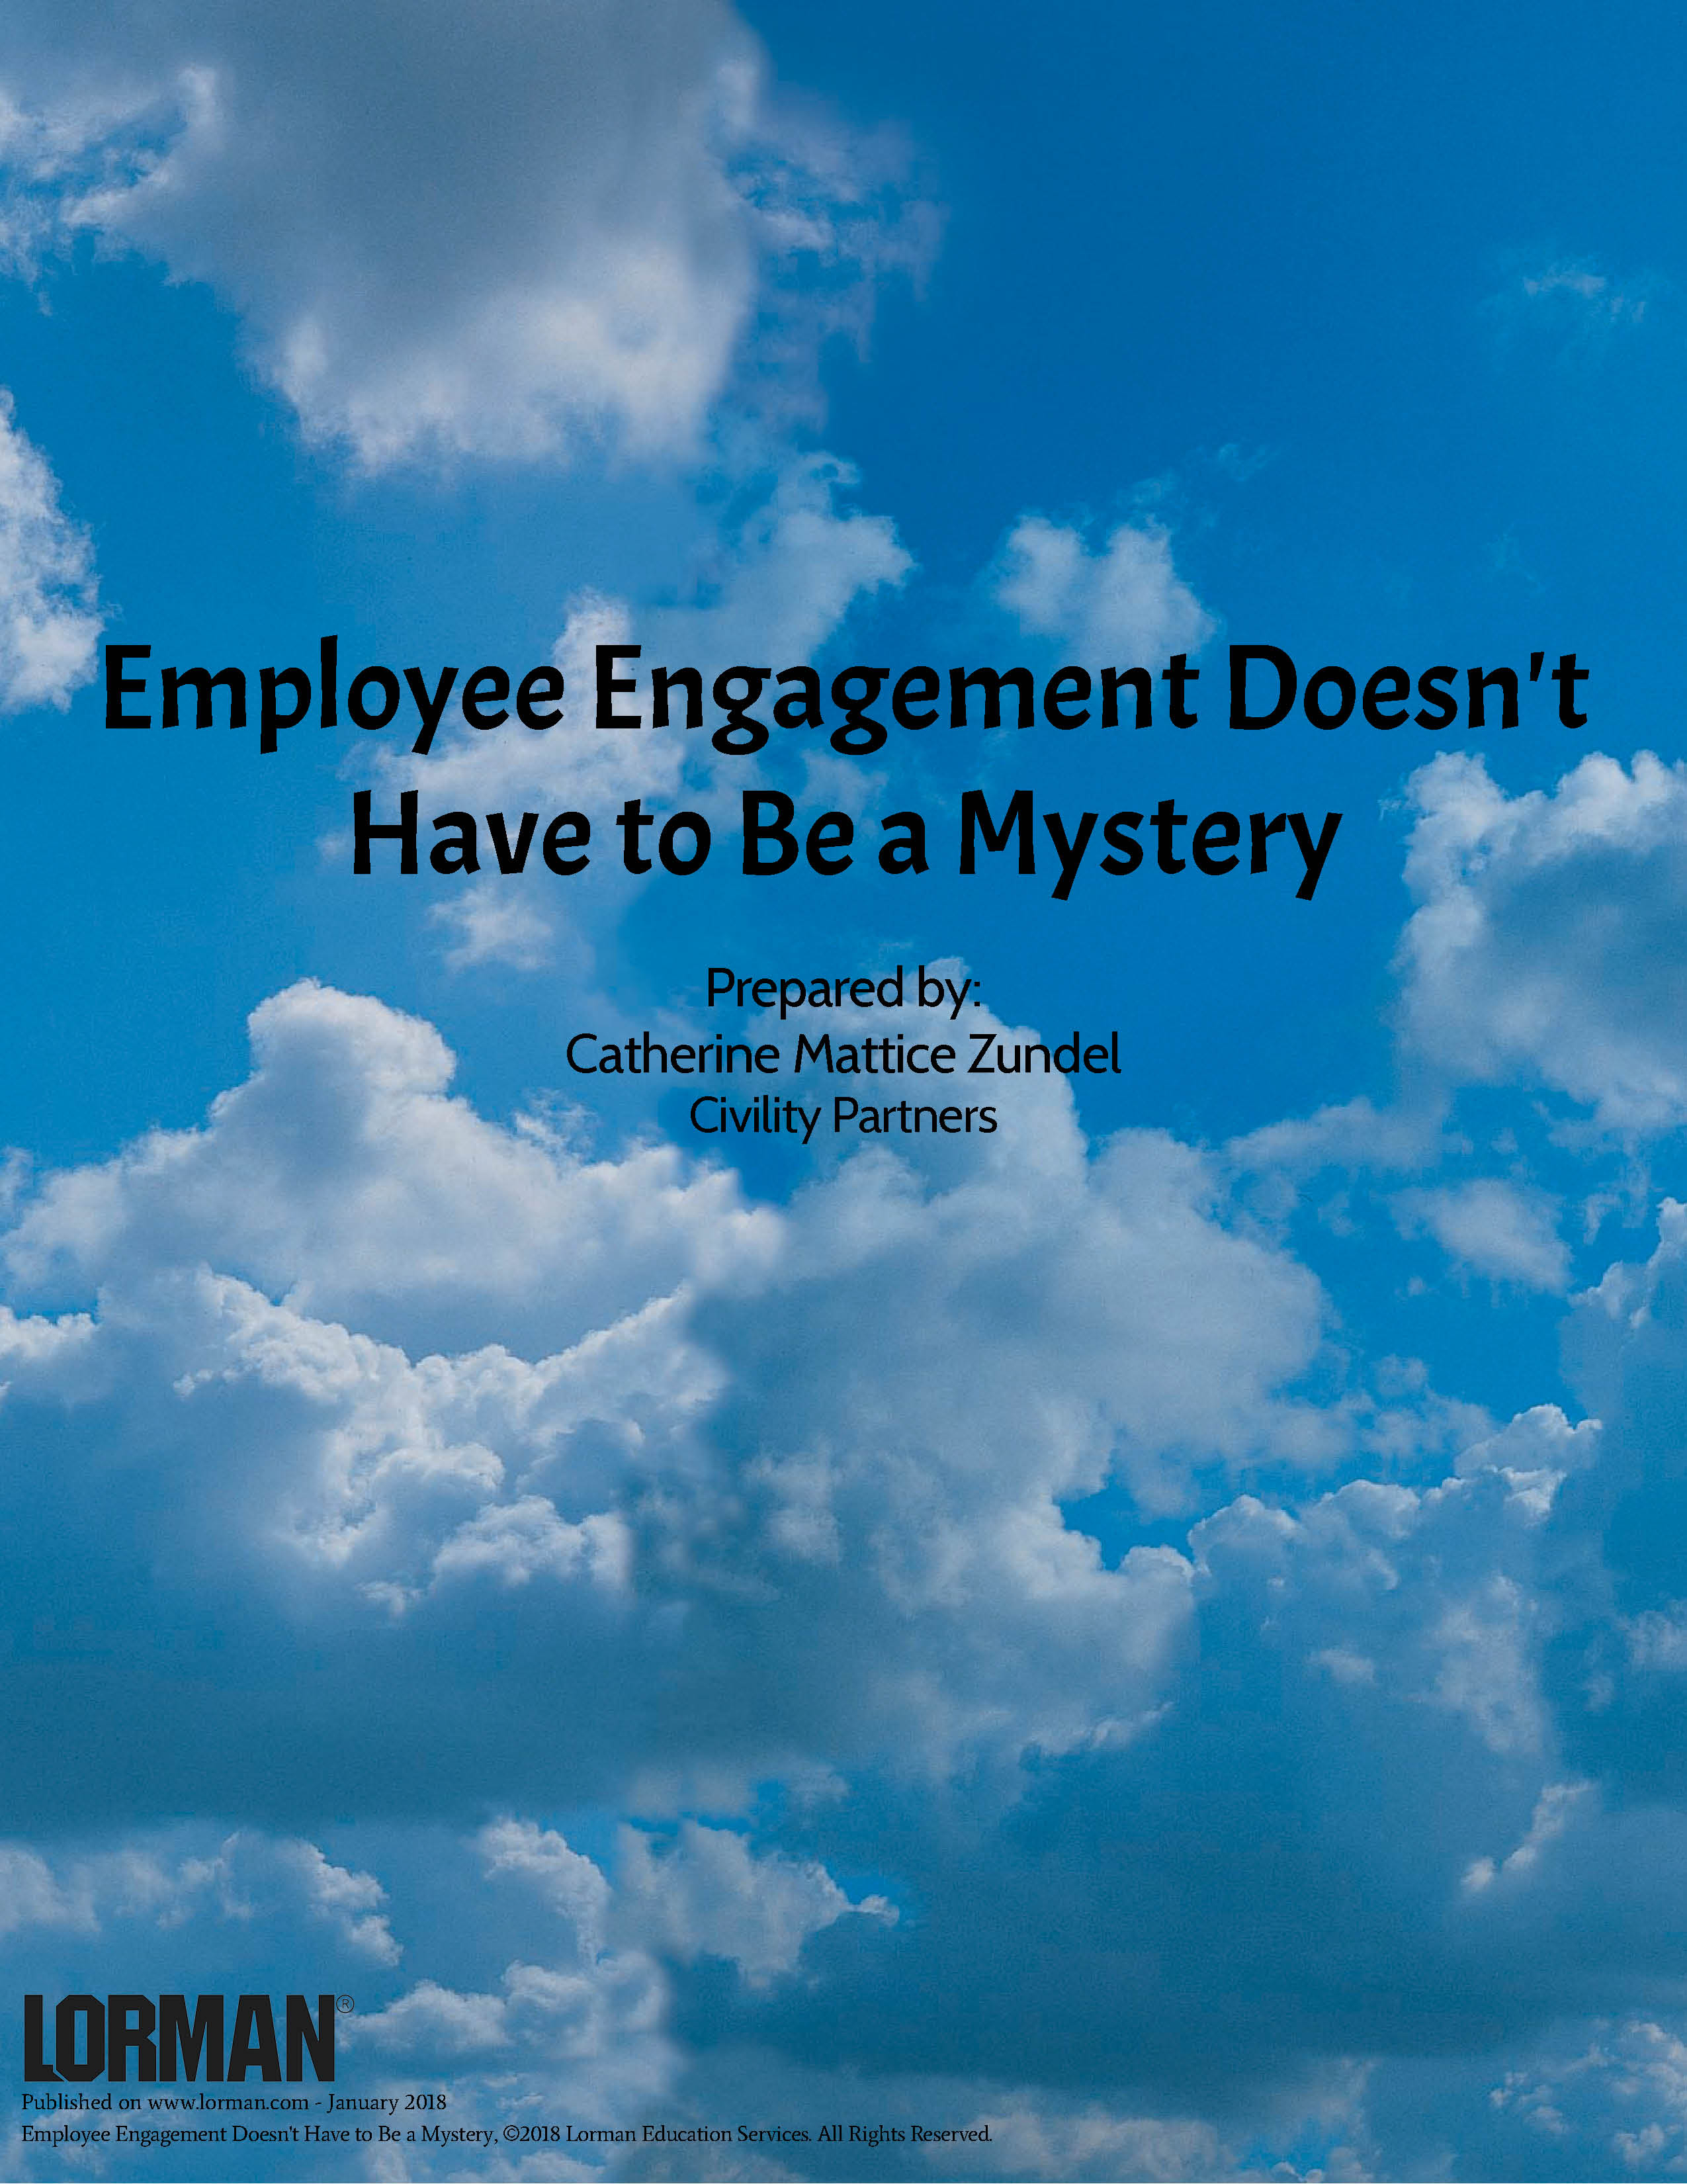 Employee Engagement Doesn't Have to Be a Mystery